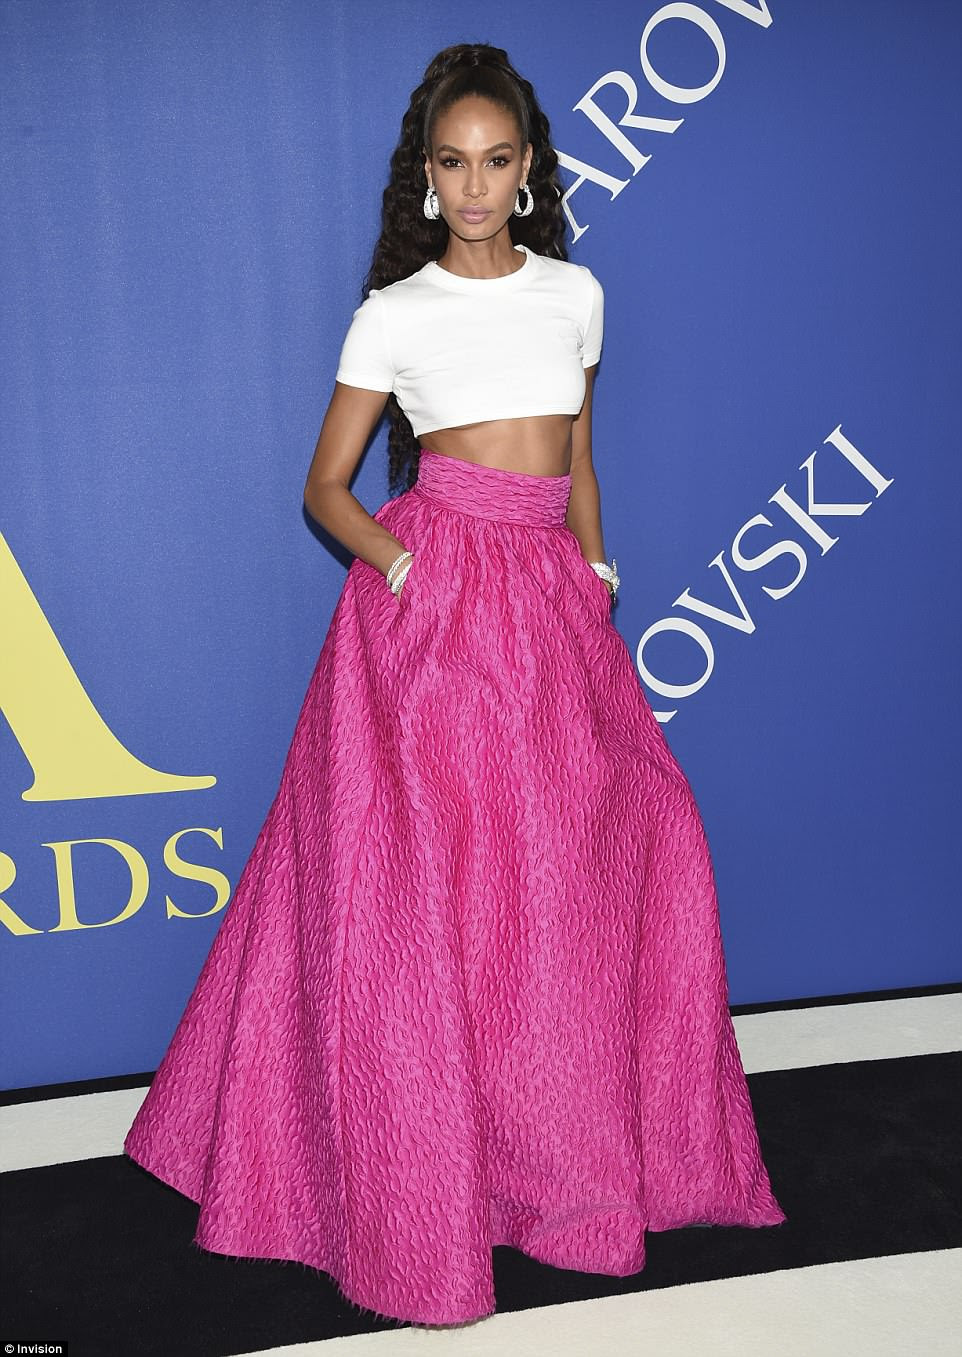 Top of the crops: Joan Smalls looked incredible as she flashed her toned tummy in a tiny white top and voluminous ballgown skirt